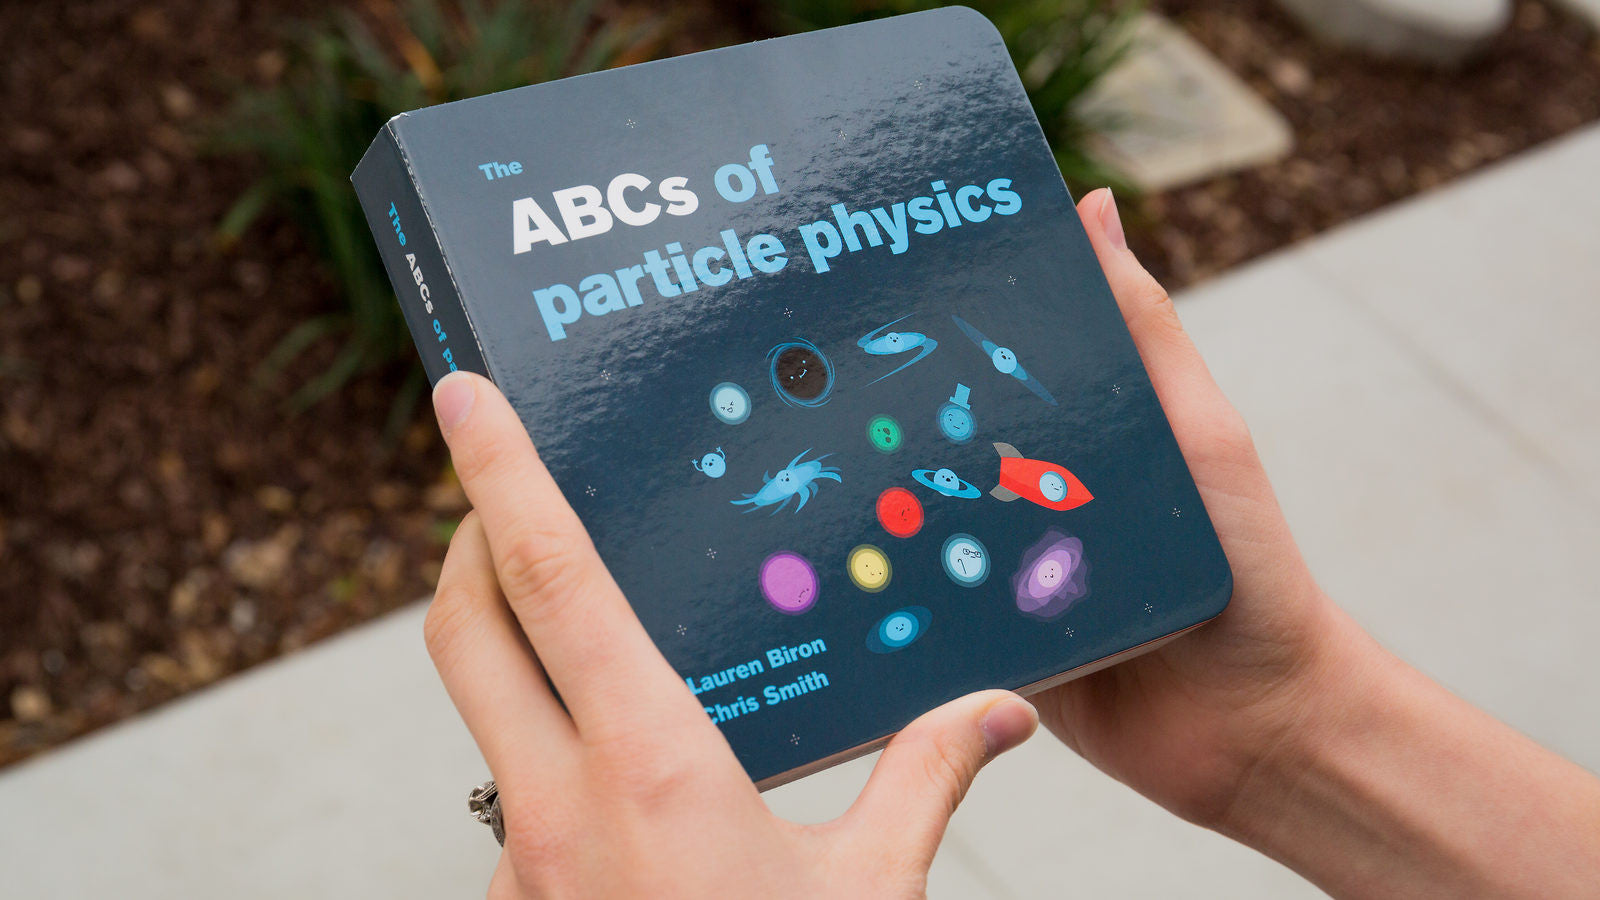 ABC's of Particle Physics Lauren Biron and Chris Smith